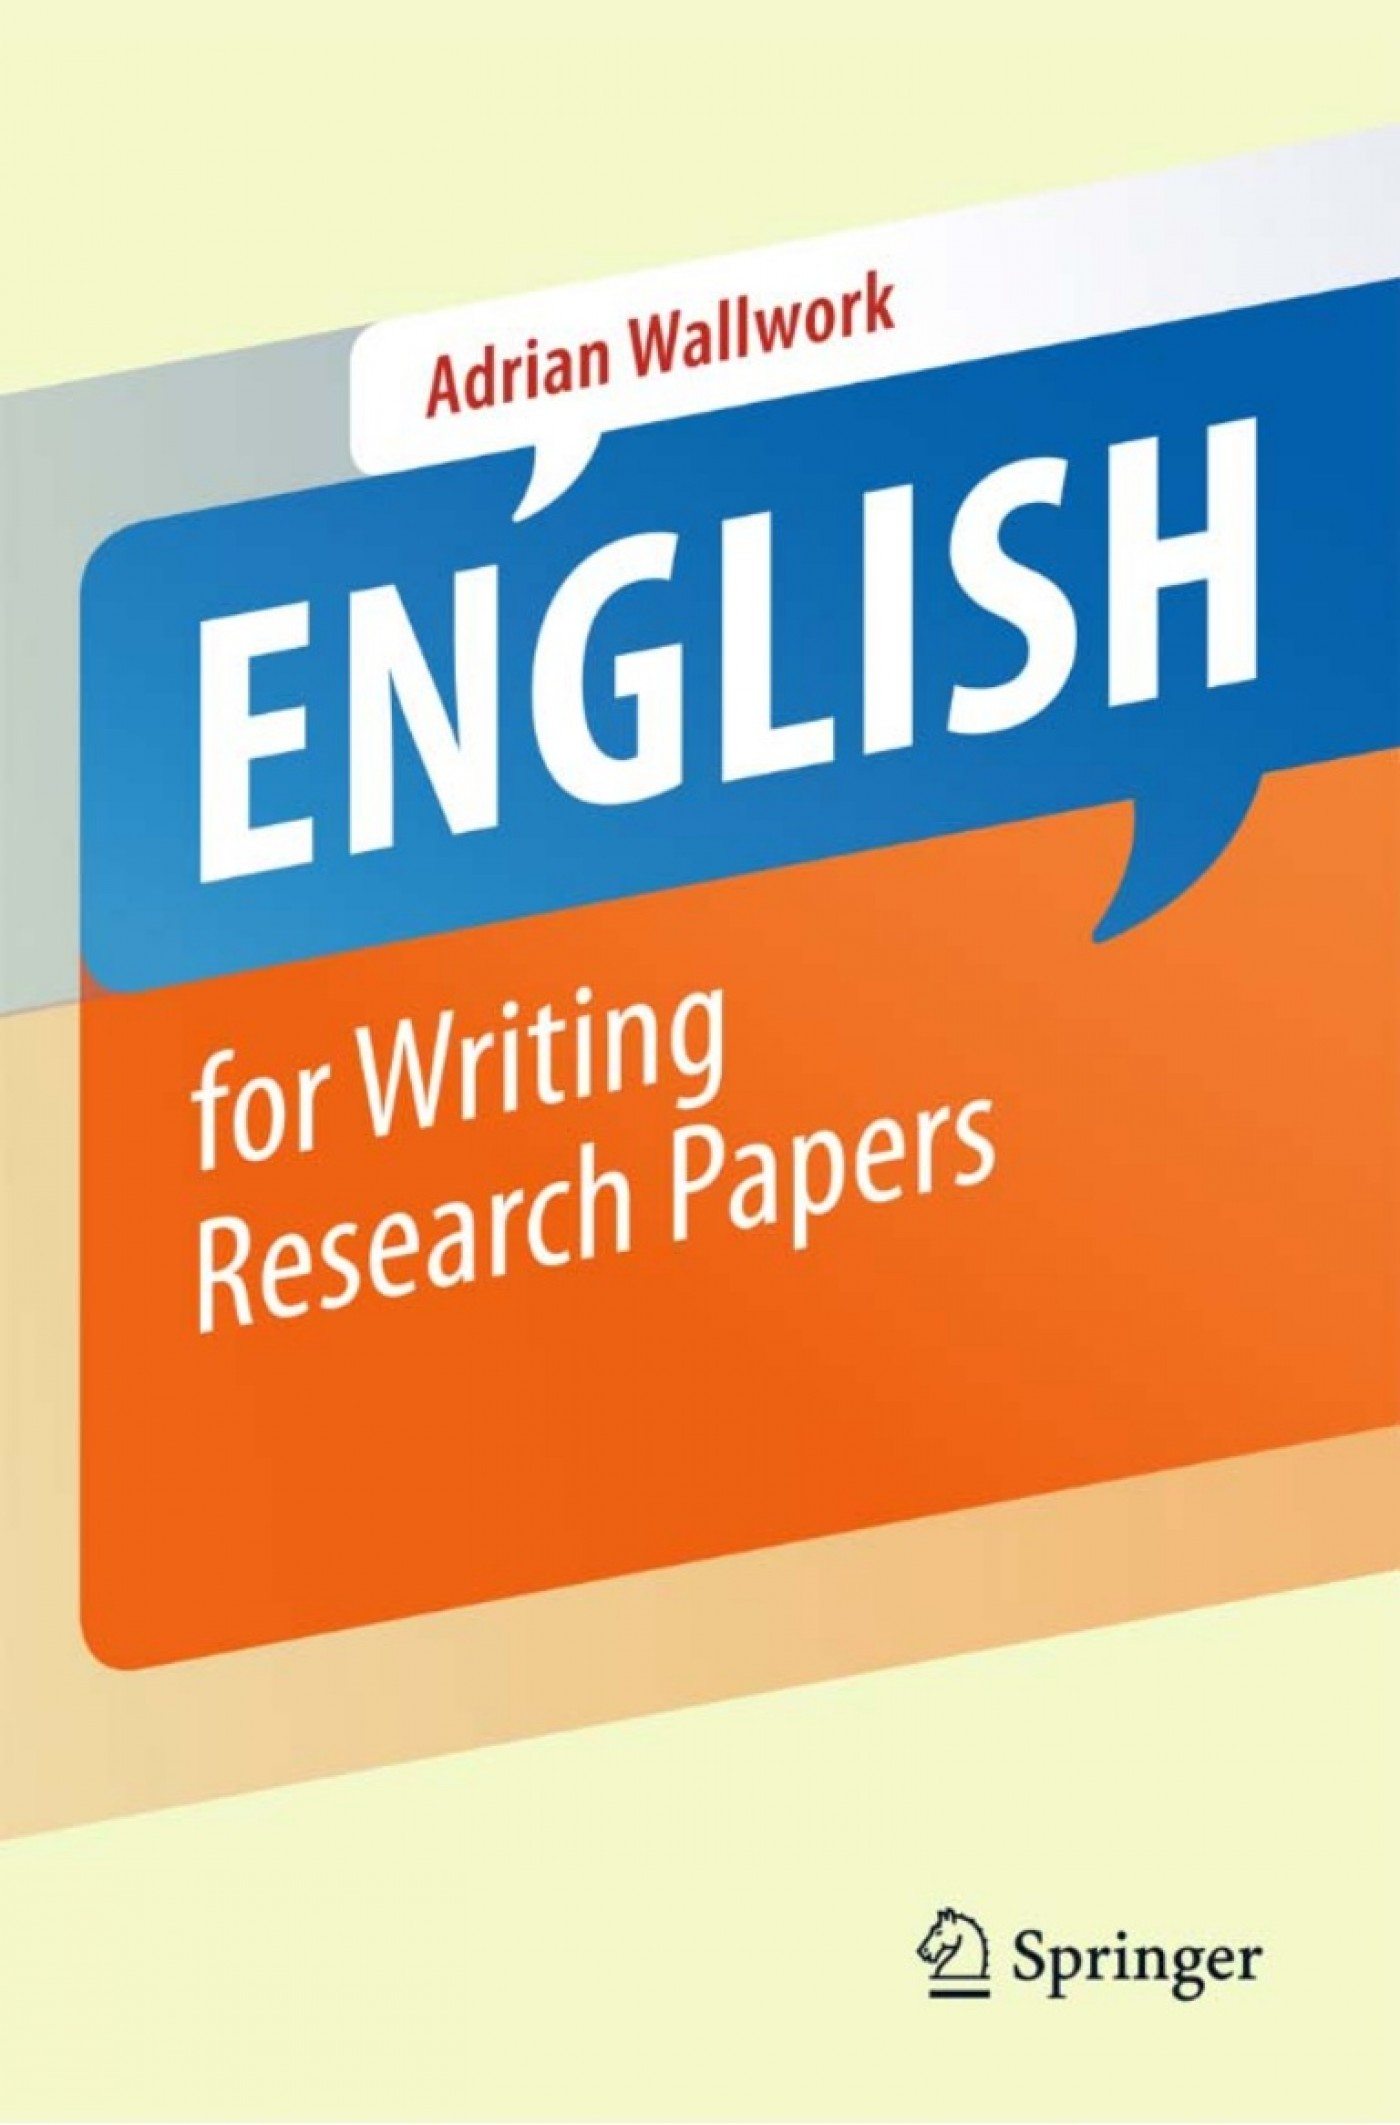 019 Englishforwritingresearchpapers Conversion Gate01 Thumbnail Writing Research Striking Paper Papers Lester 16th Edition A Complete Guide James D. 1400